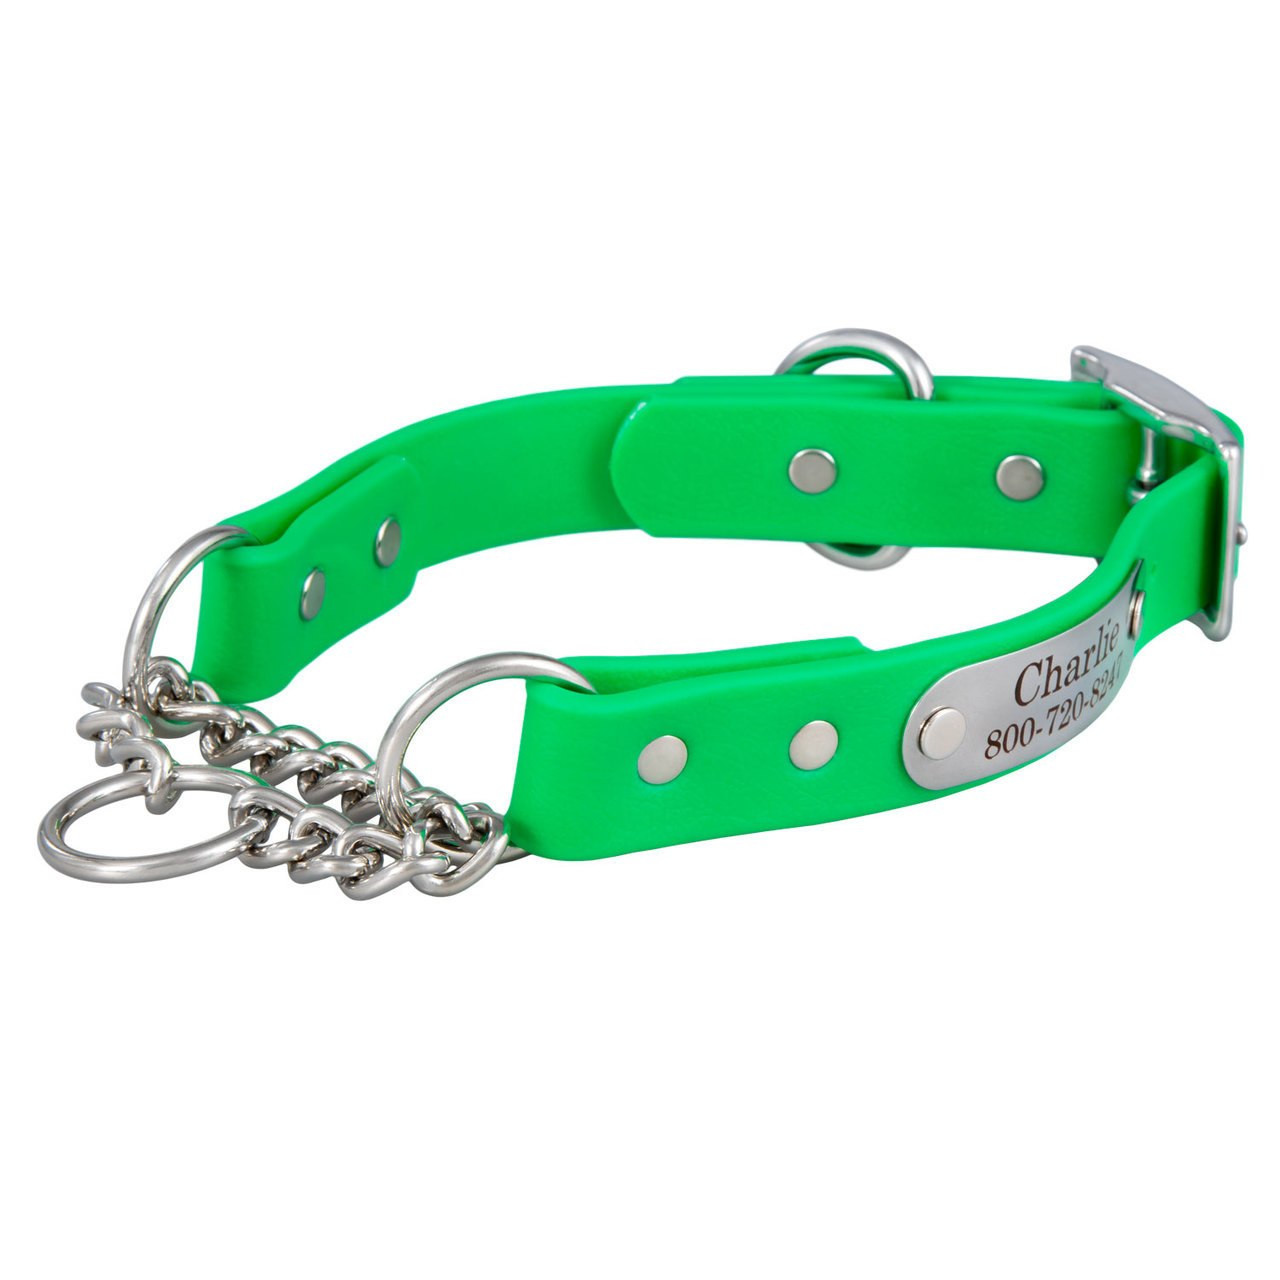 Waterproof Chain Martingale Collar with Engraved Nameplate Bright Green